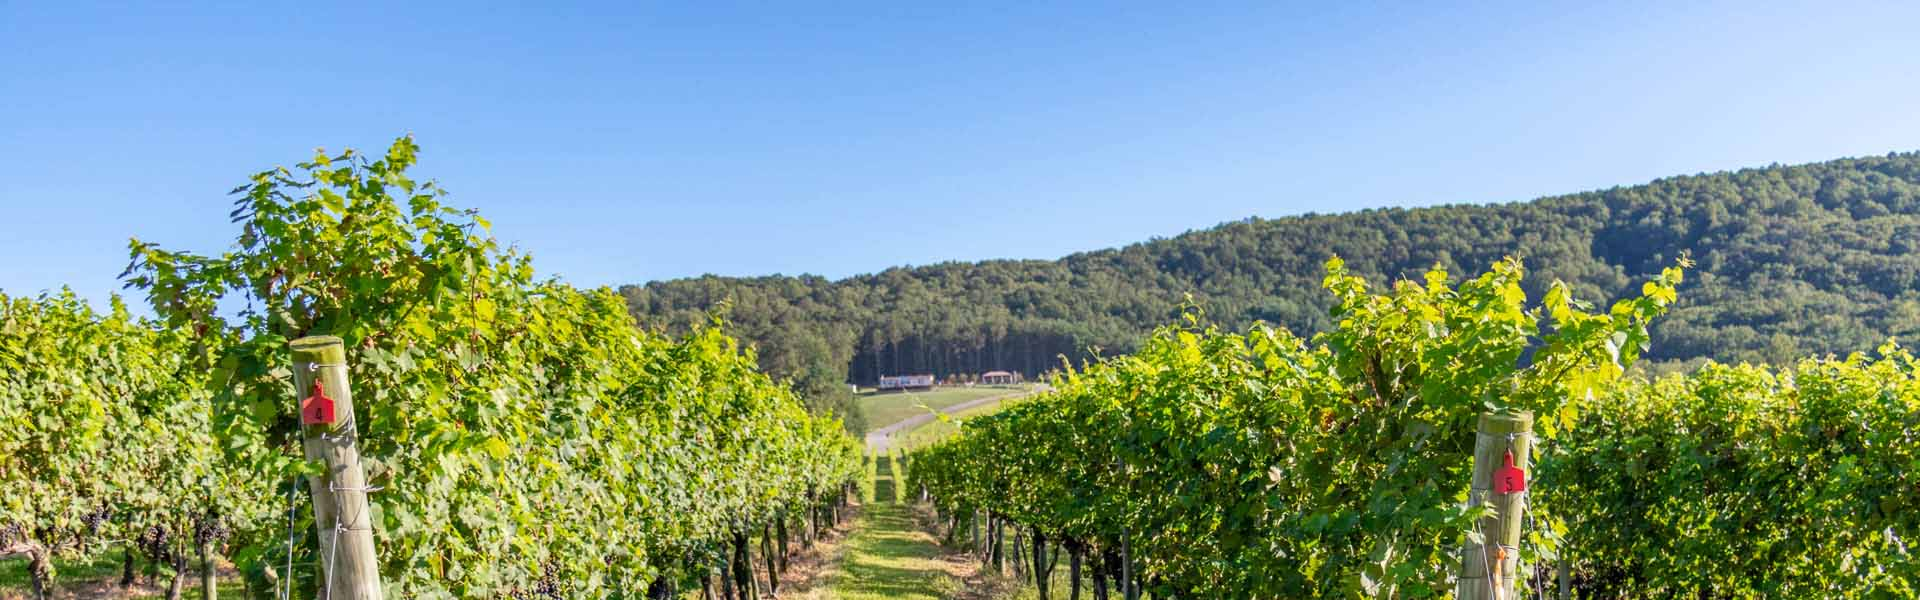 North Carolina Wineries